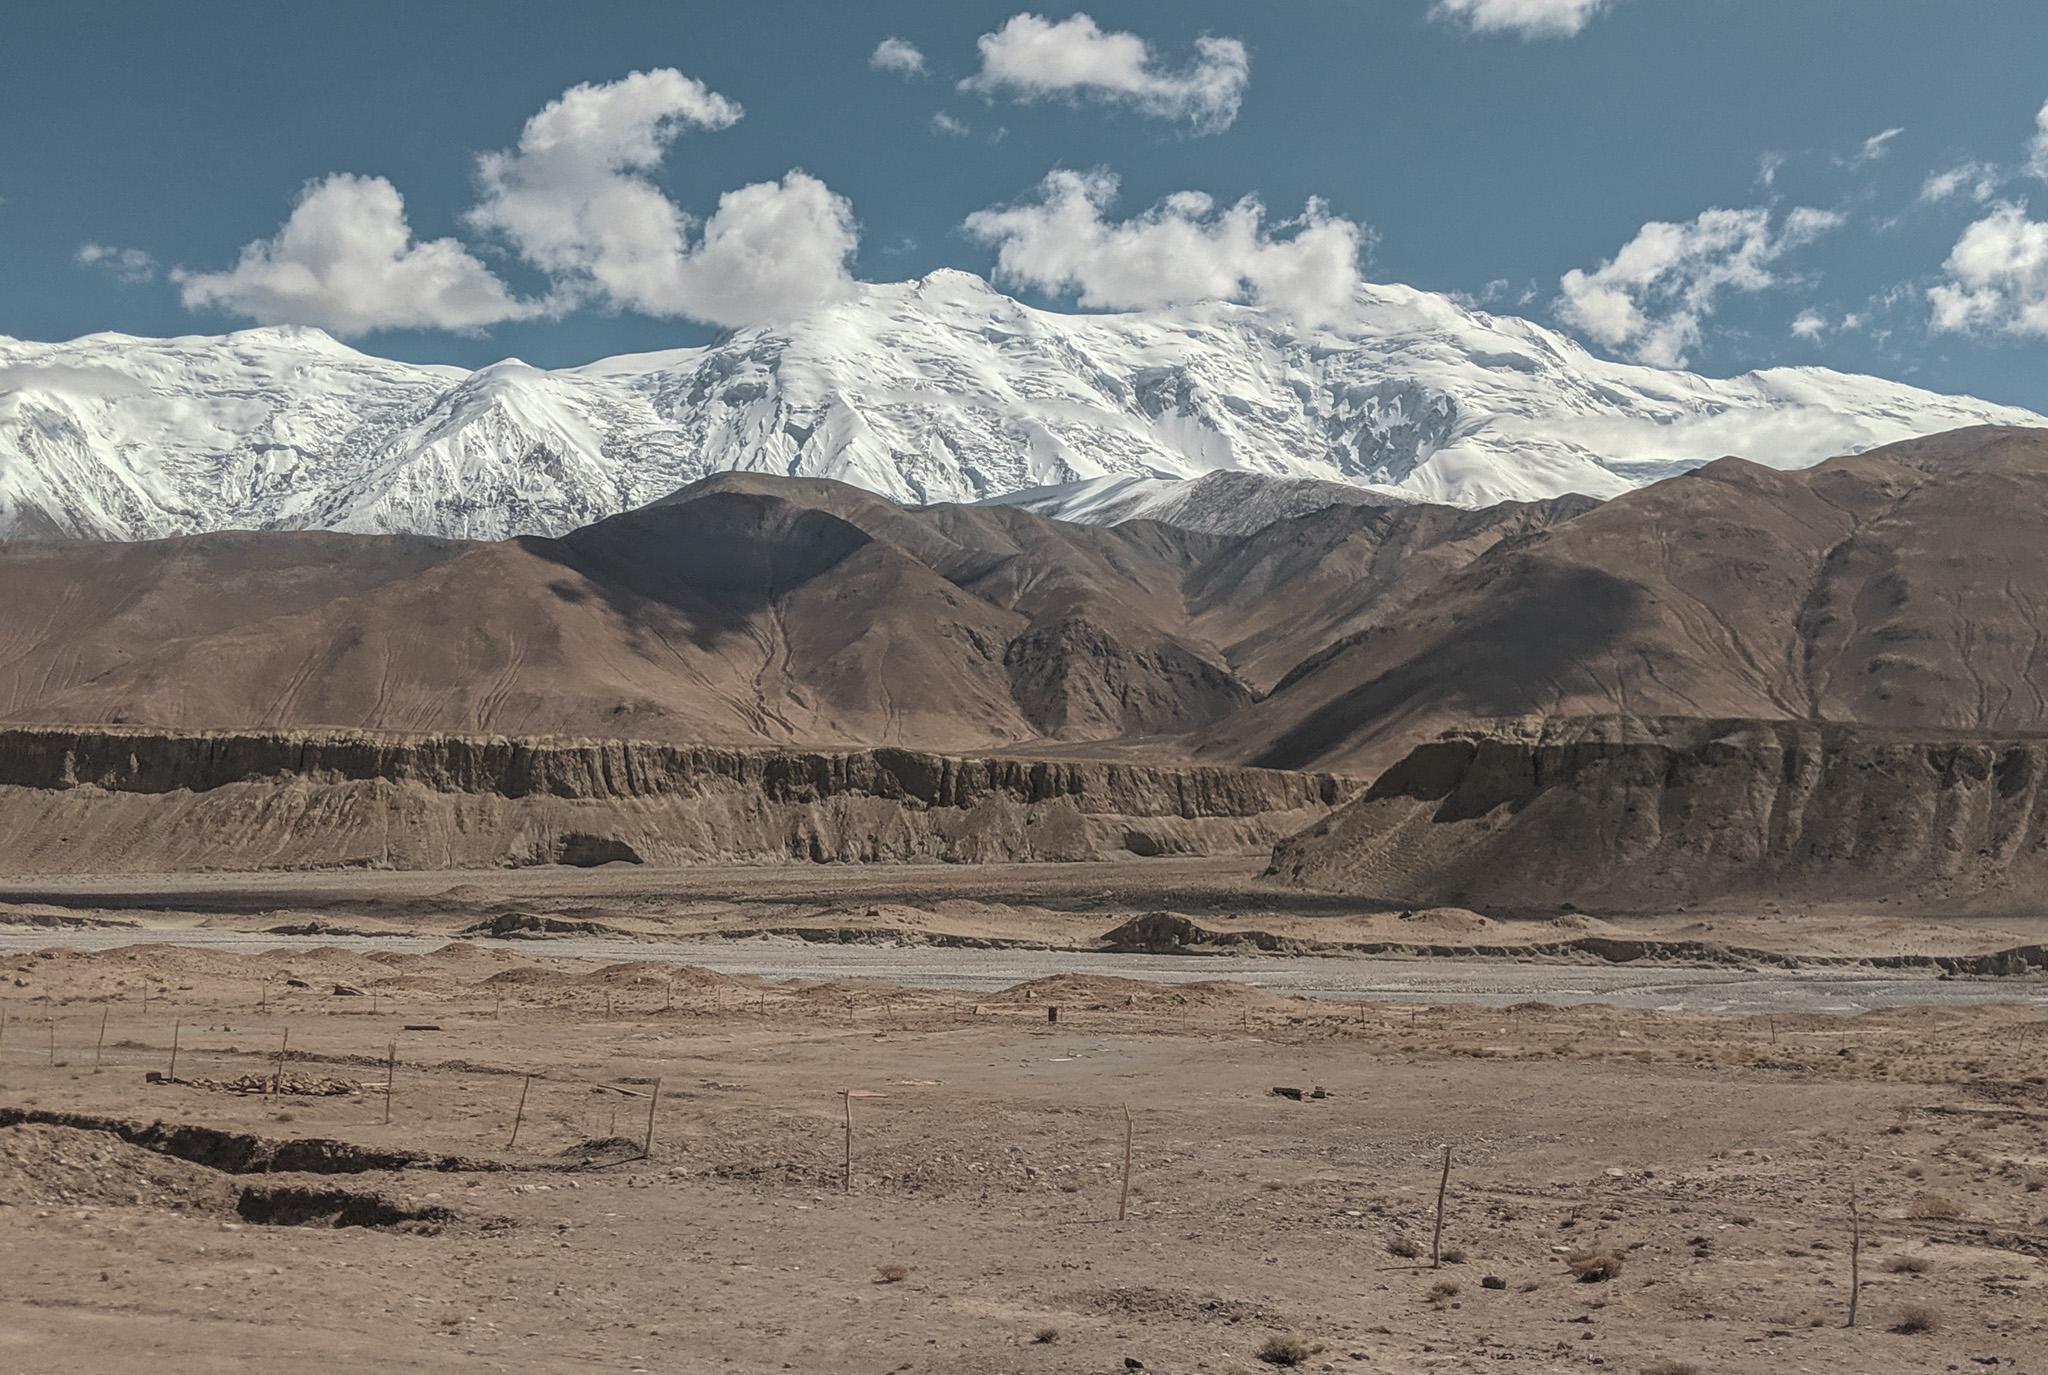 Views on the Tashkurgan to Kashgar drive